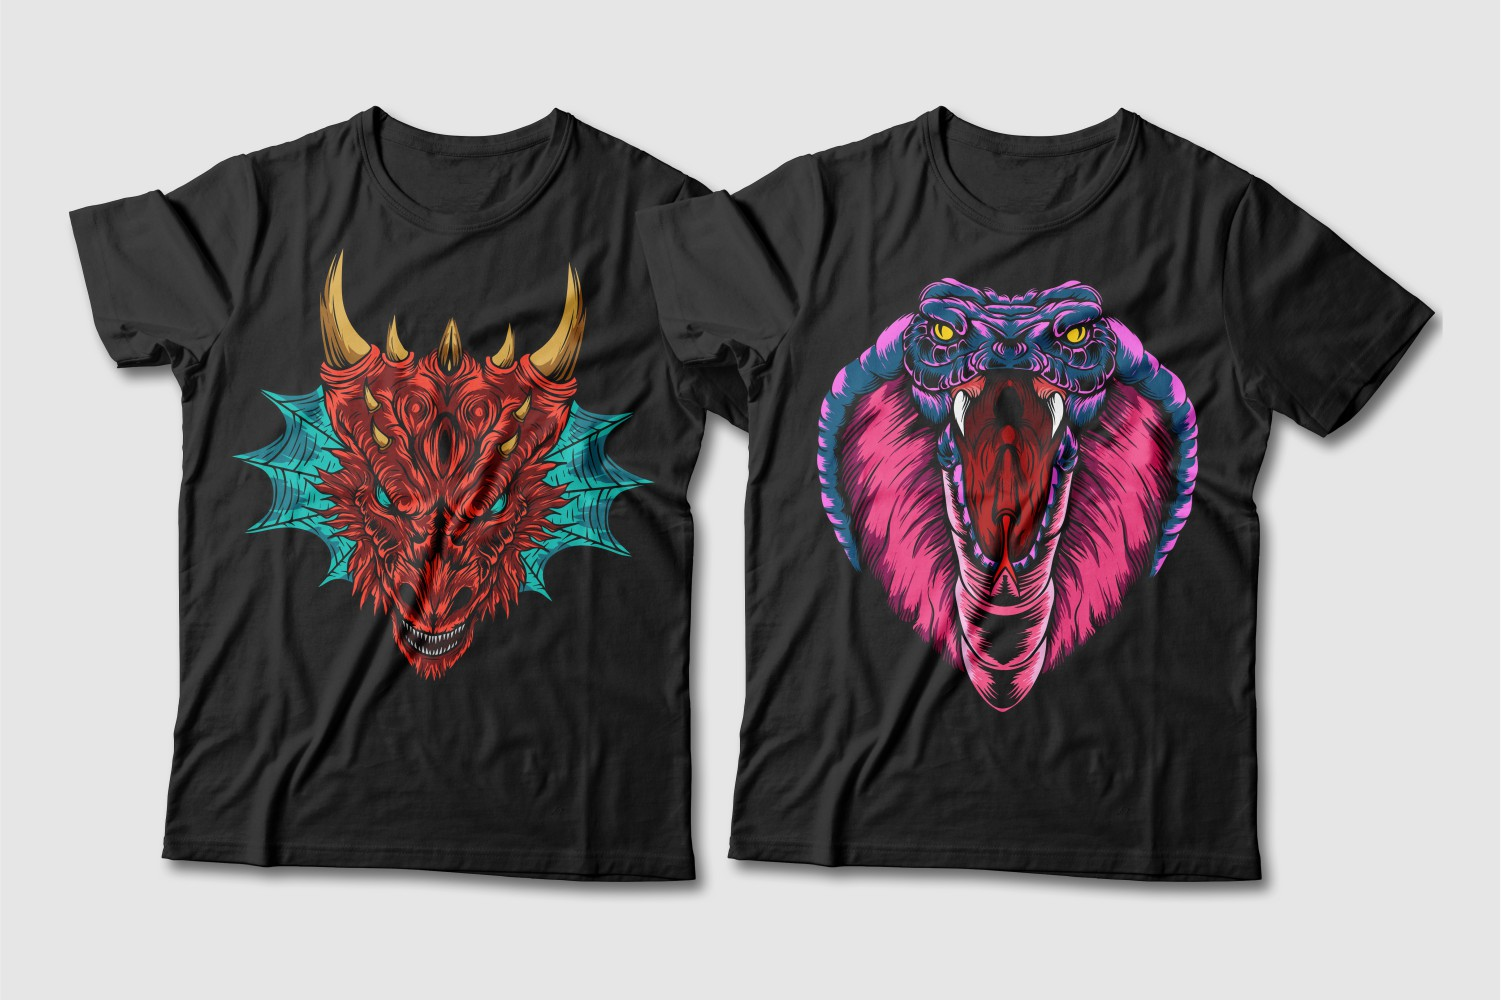 Black T-shirts with a crew neck featuring a red dragon with a turquoise tuft and a crimson cobra with yellow eyes.